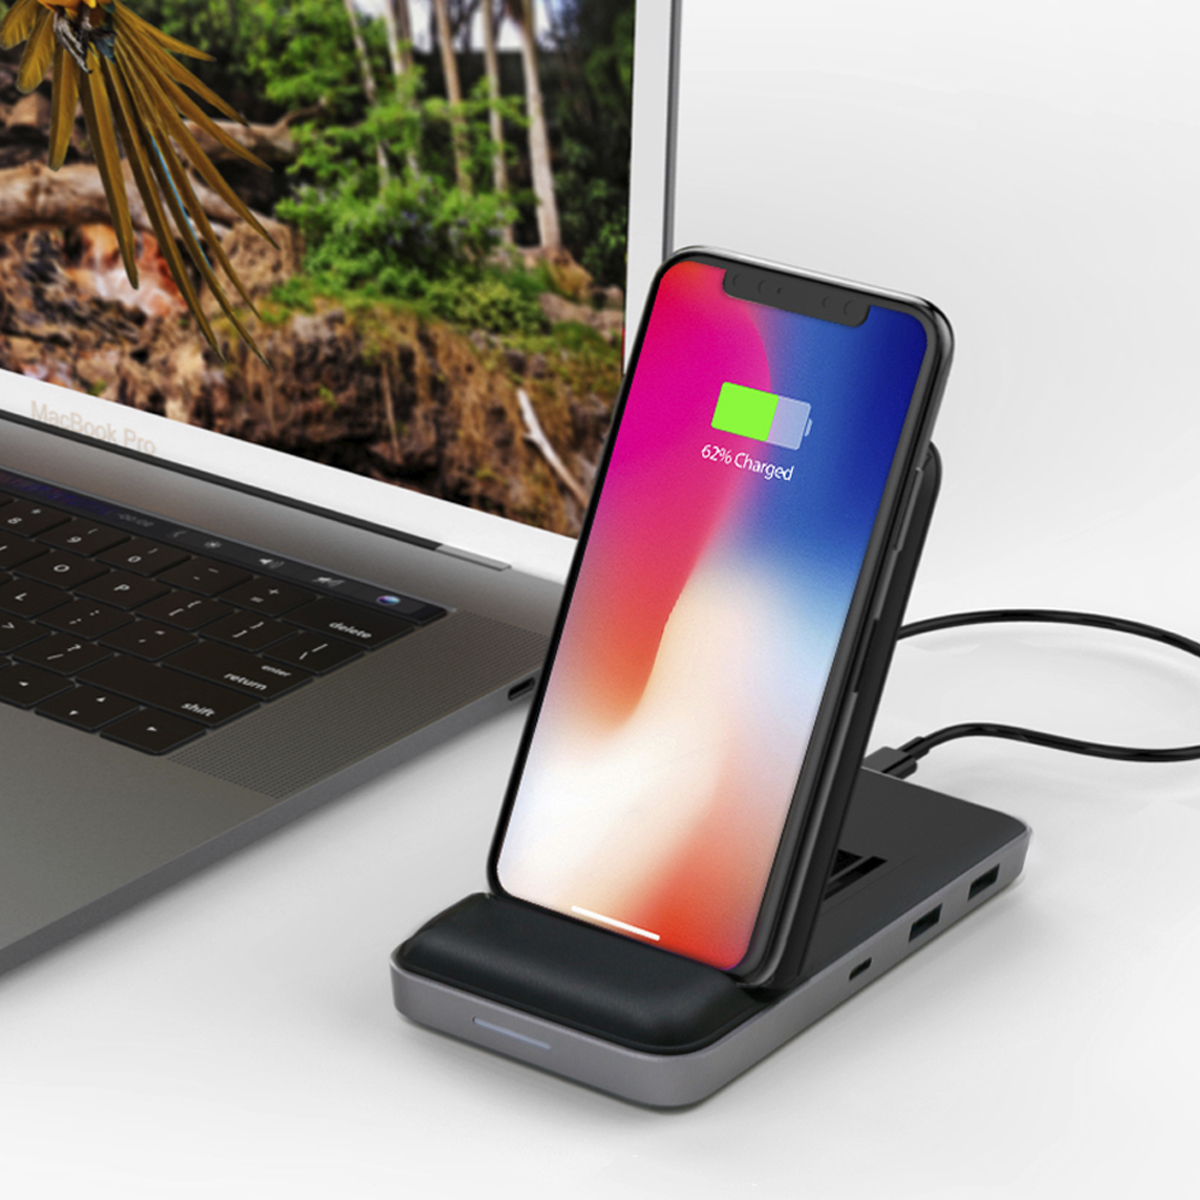 HyperDrive 8in1 USB-C Hub + Qi Wireless Charger Stand 【USB-Cハブ / ワイヤレス充電器 / 可変式スタンド付き】